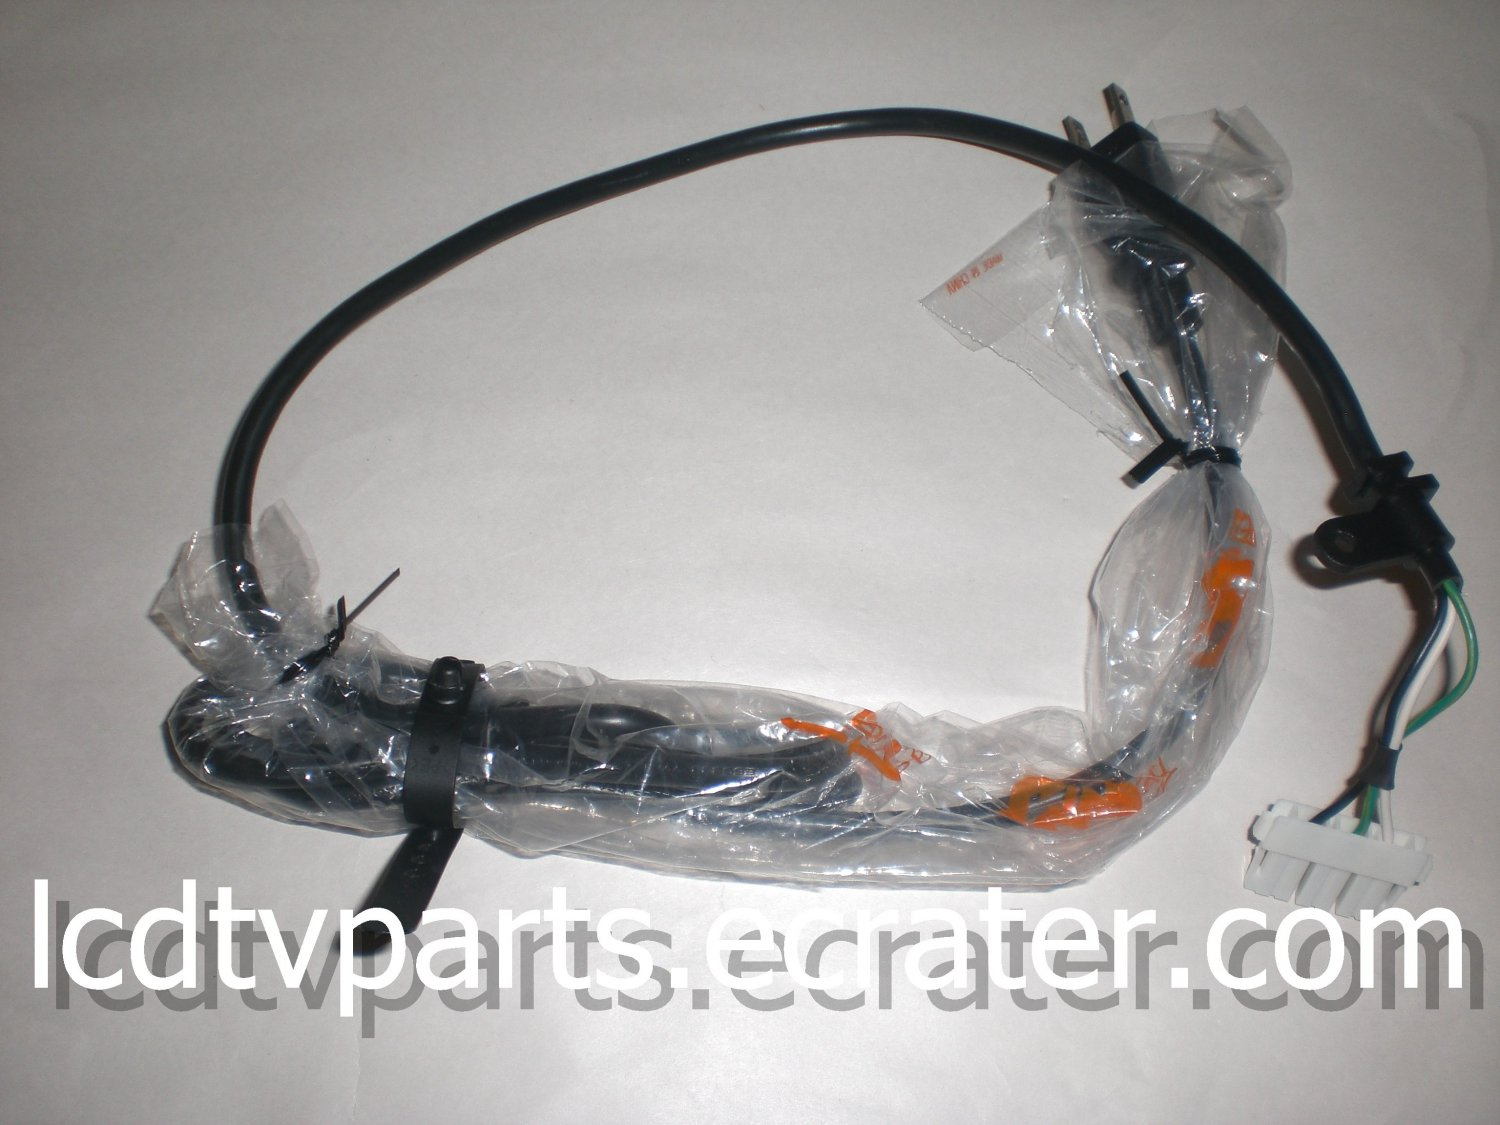 EAD60817902, AC Power Cord Cable for LG 55LM8600